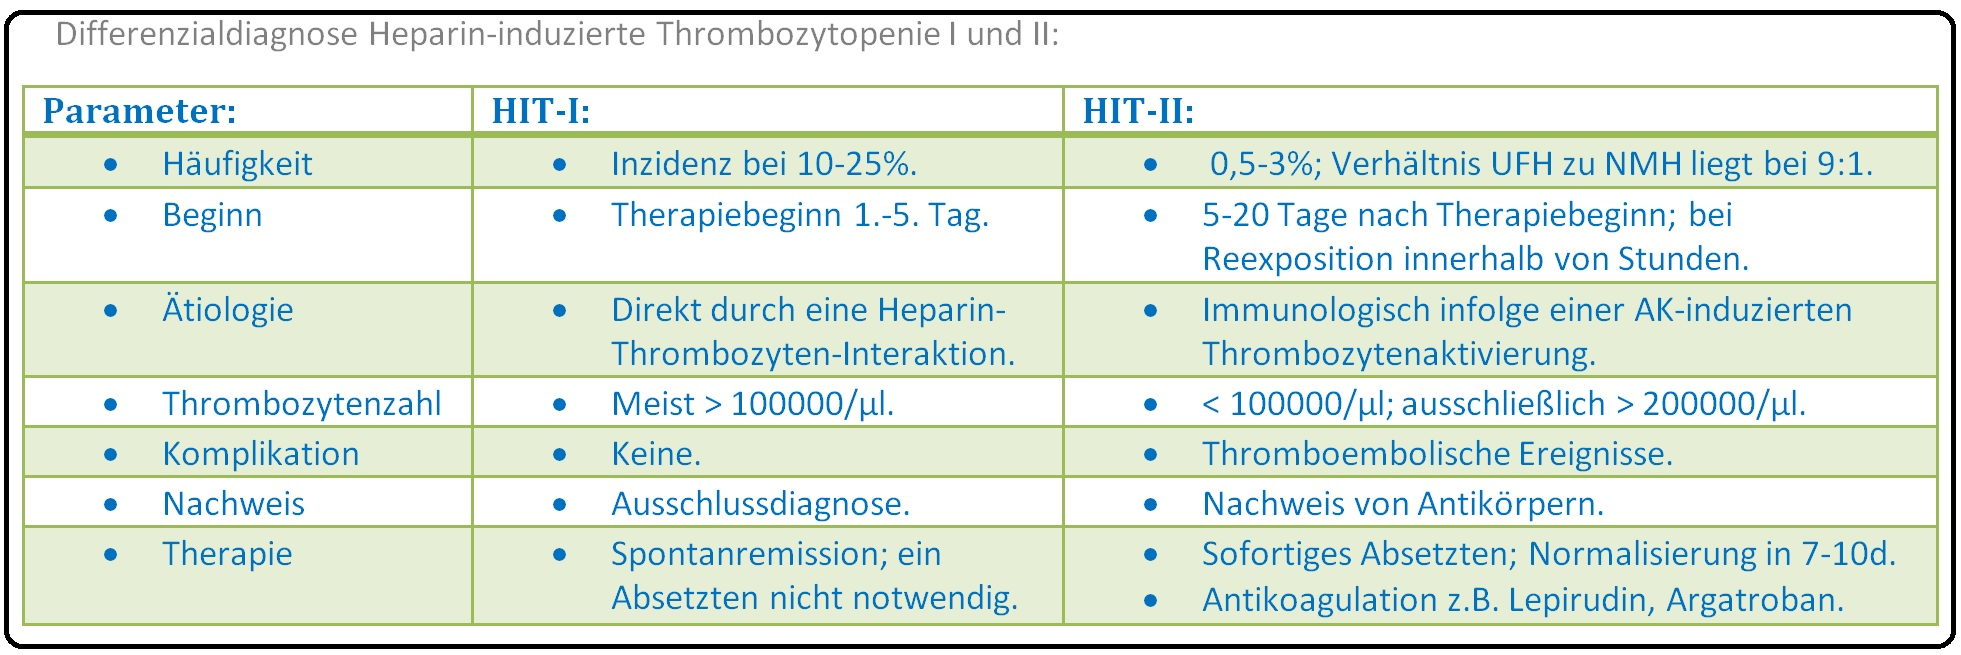 496 Differenzialdiagnose Heparin induzierte Thrombozytopenie I und II